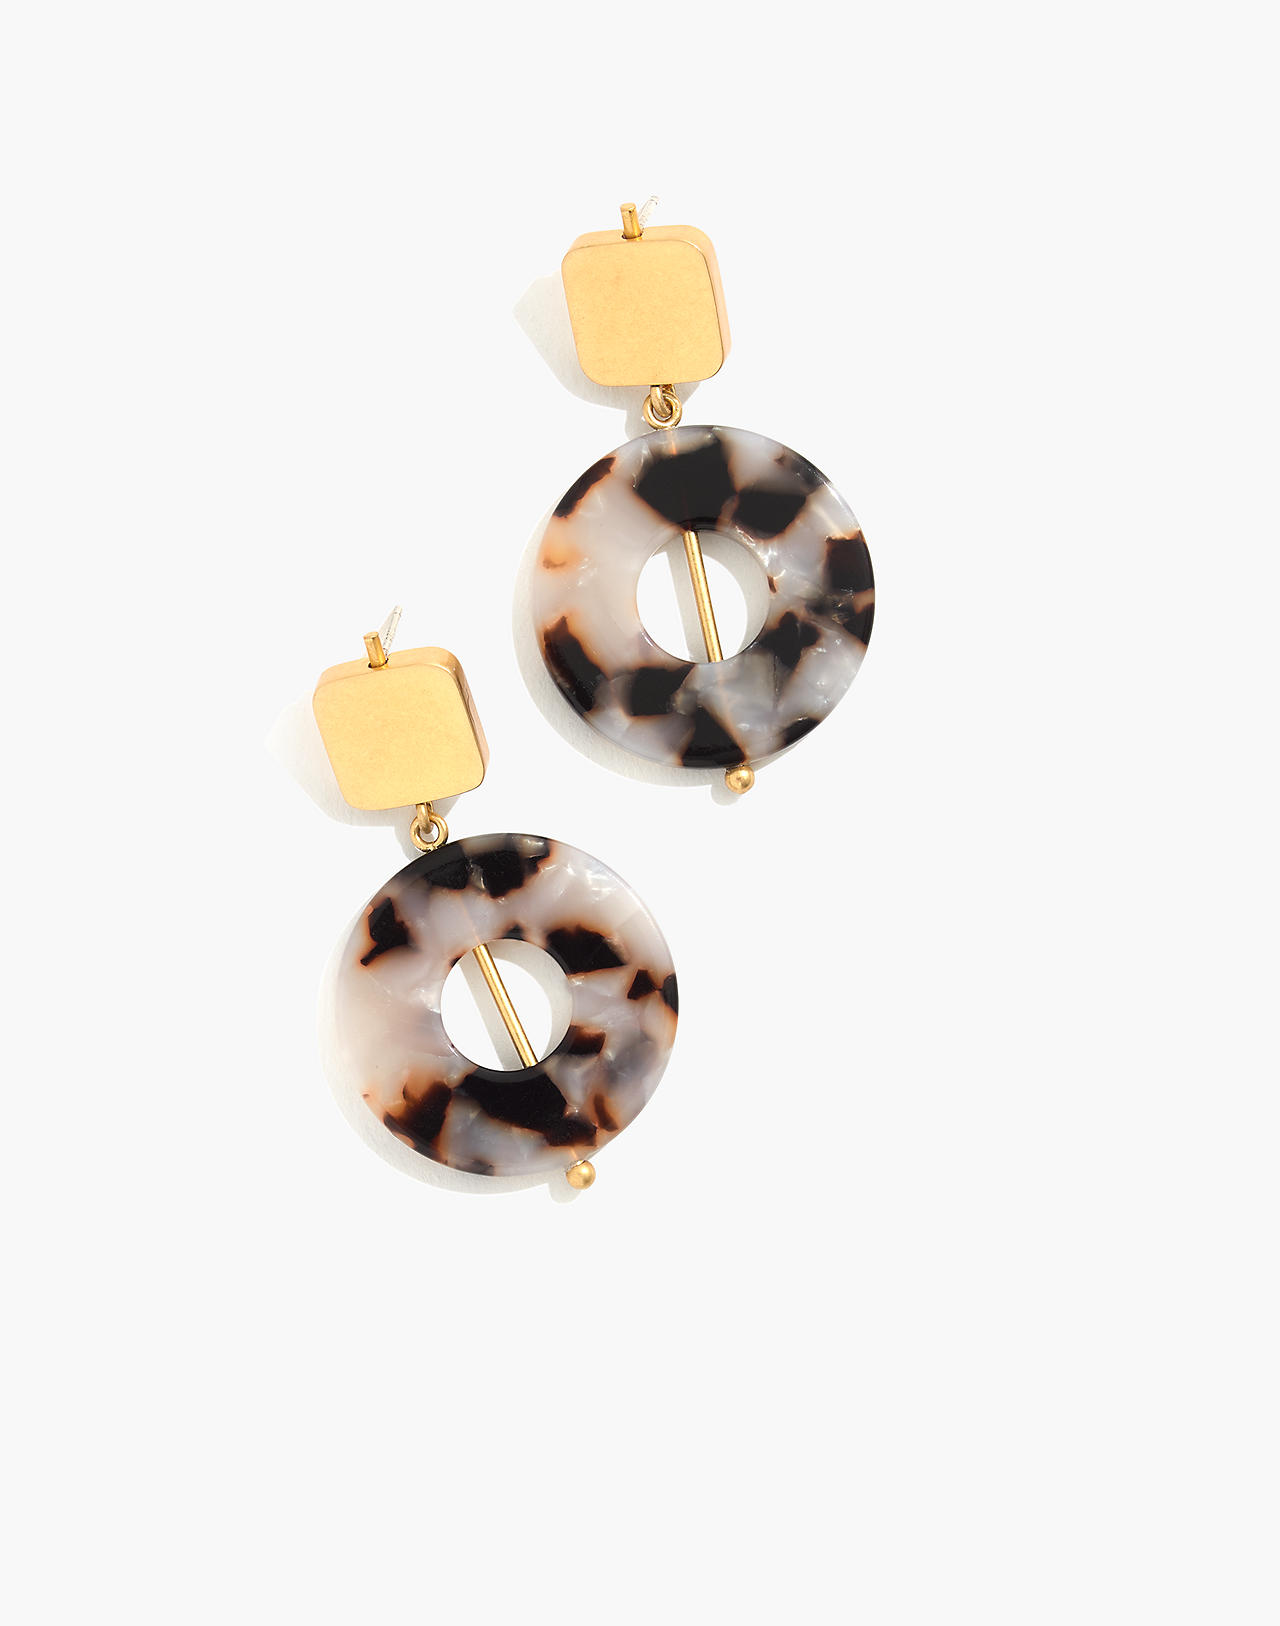 Linked Shapes Statement Earrings in shell tort image 1